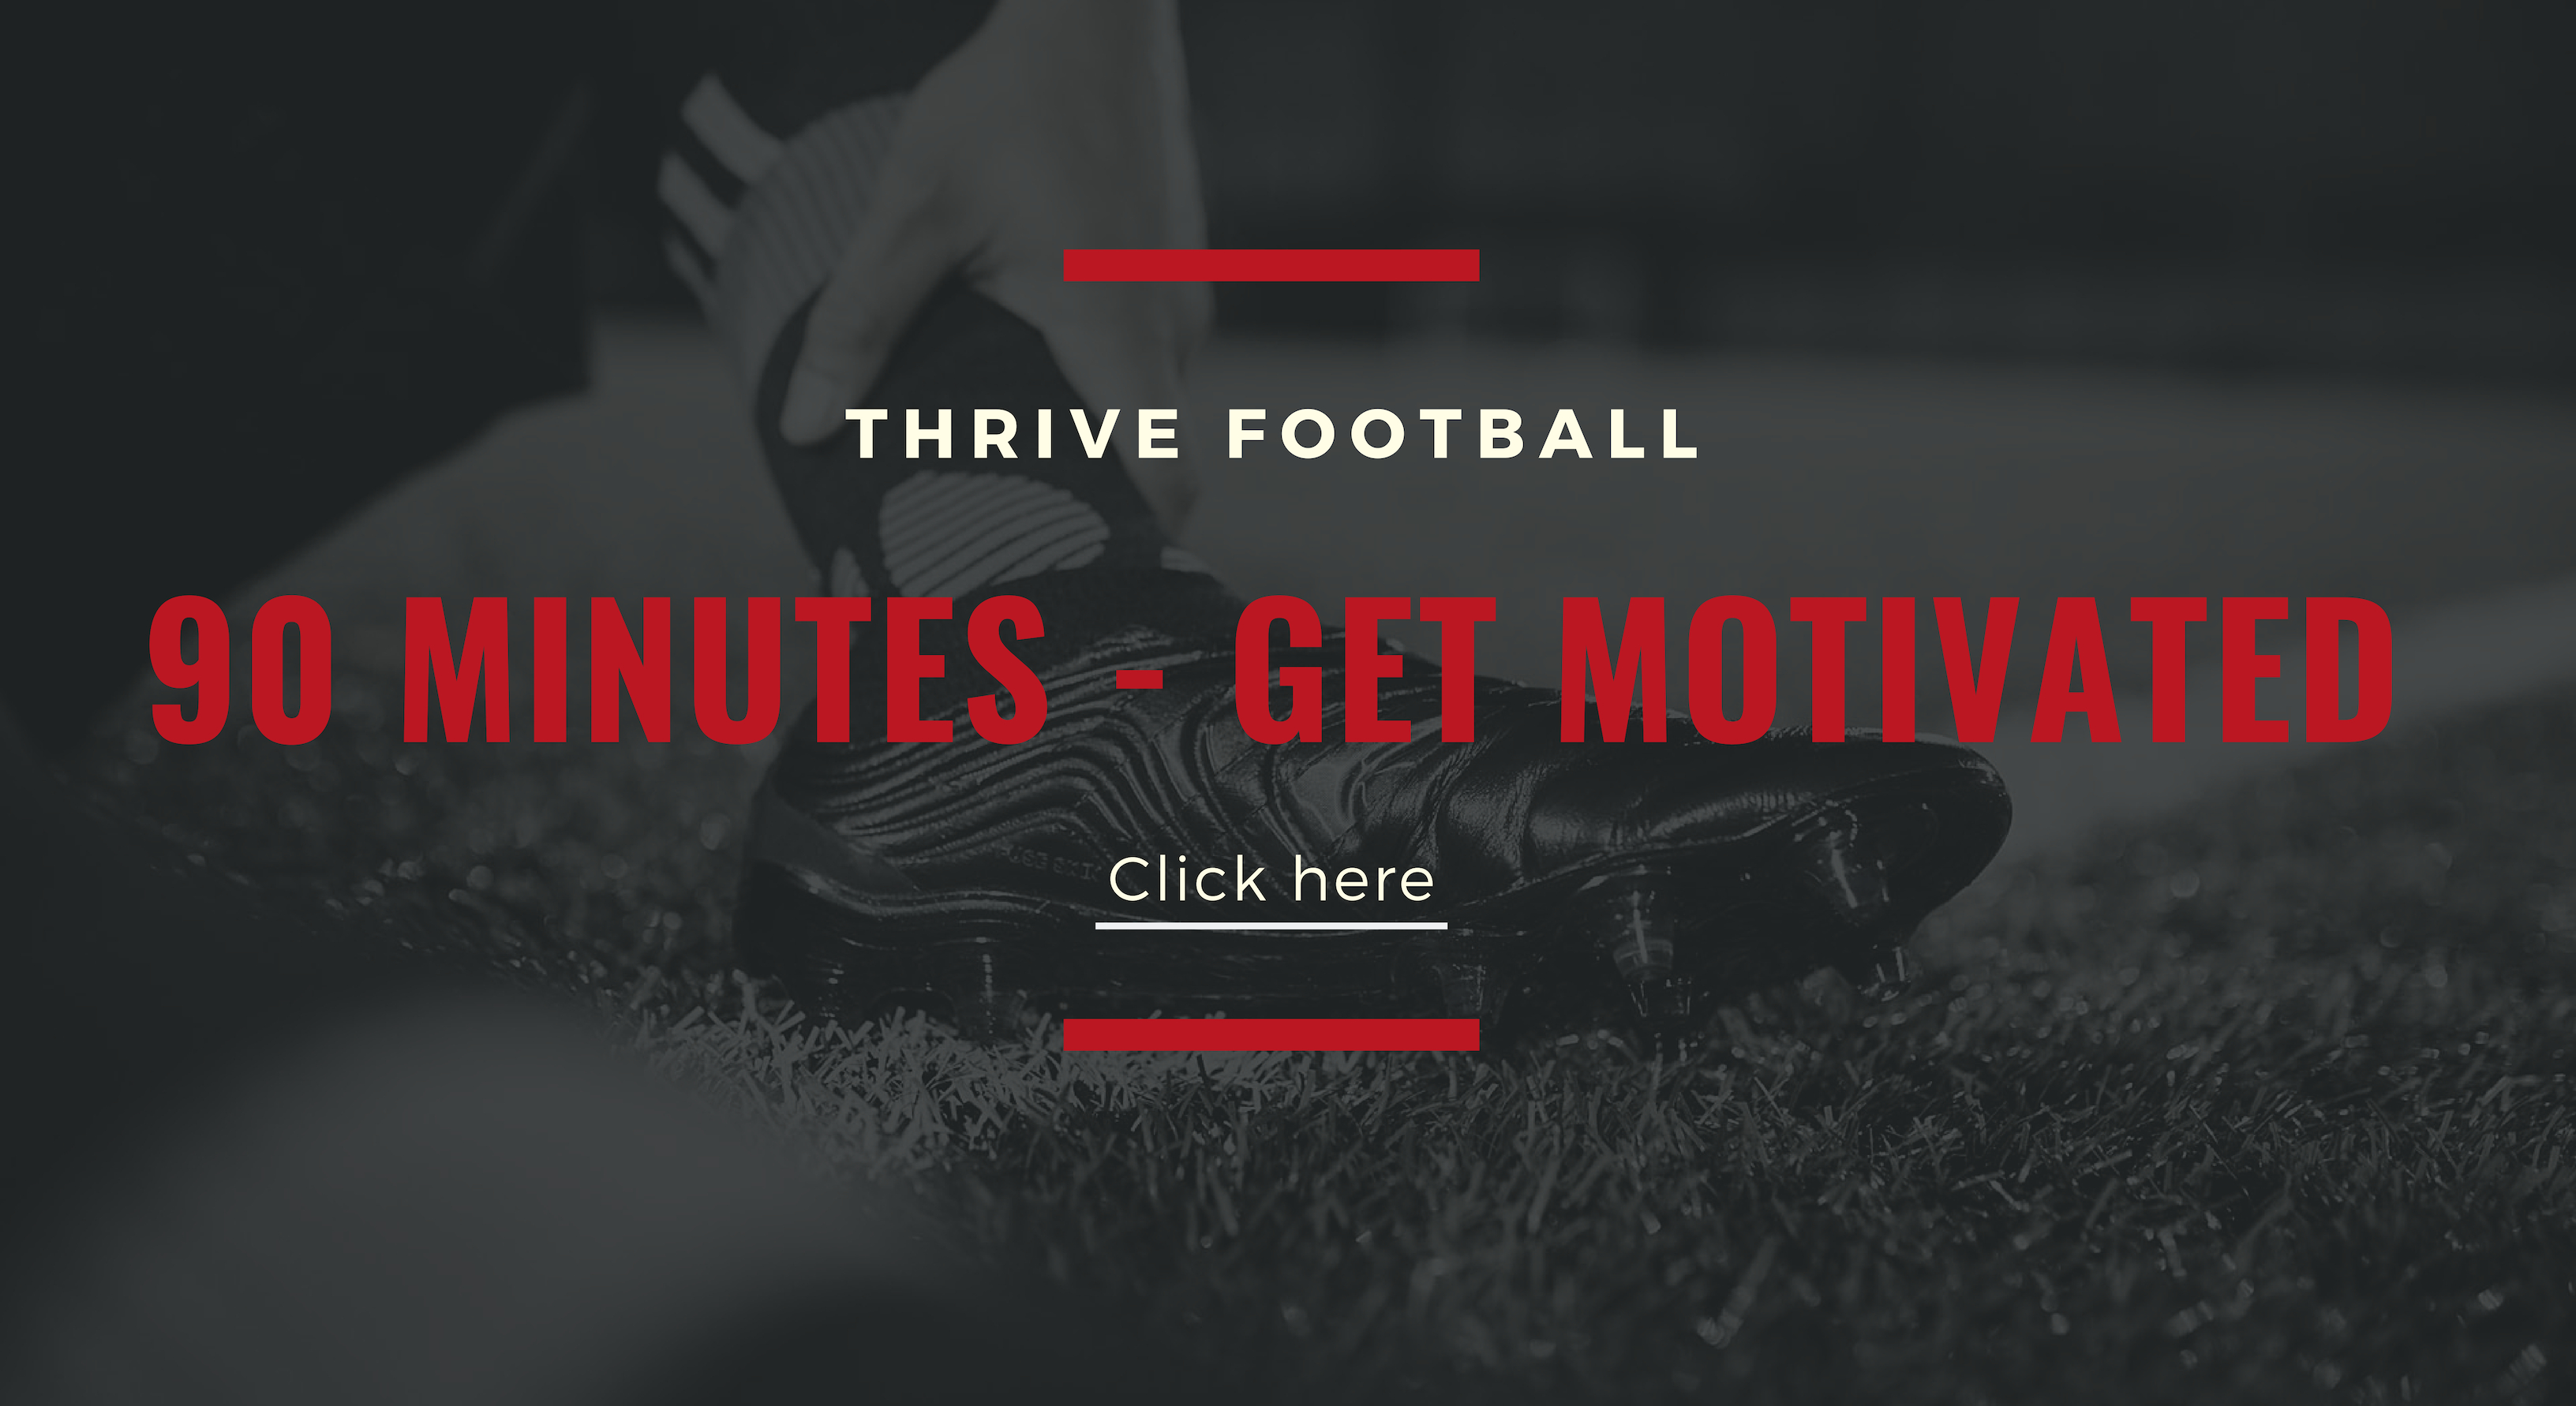 Link to 90 minutes - get motivated article